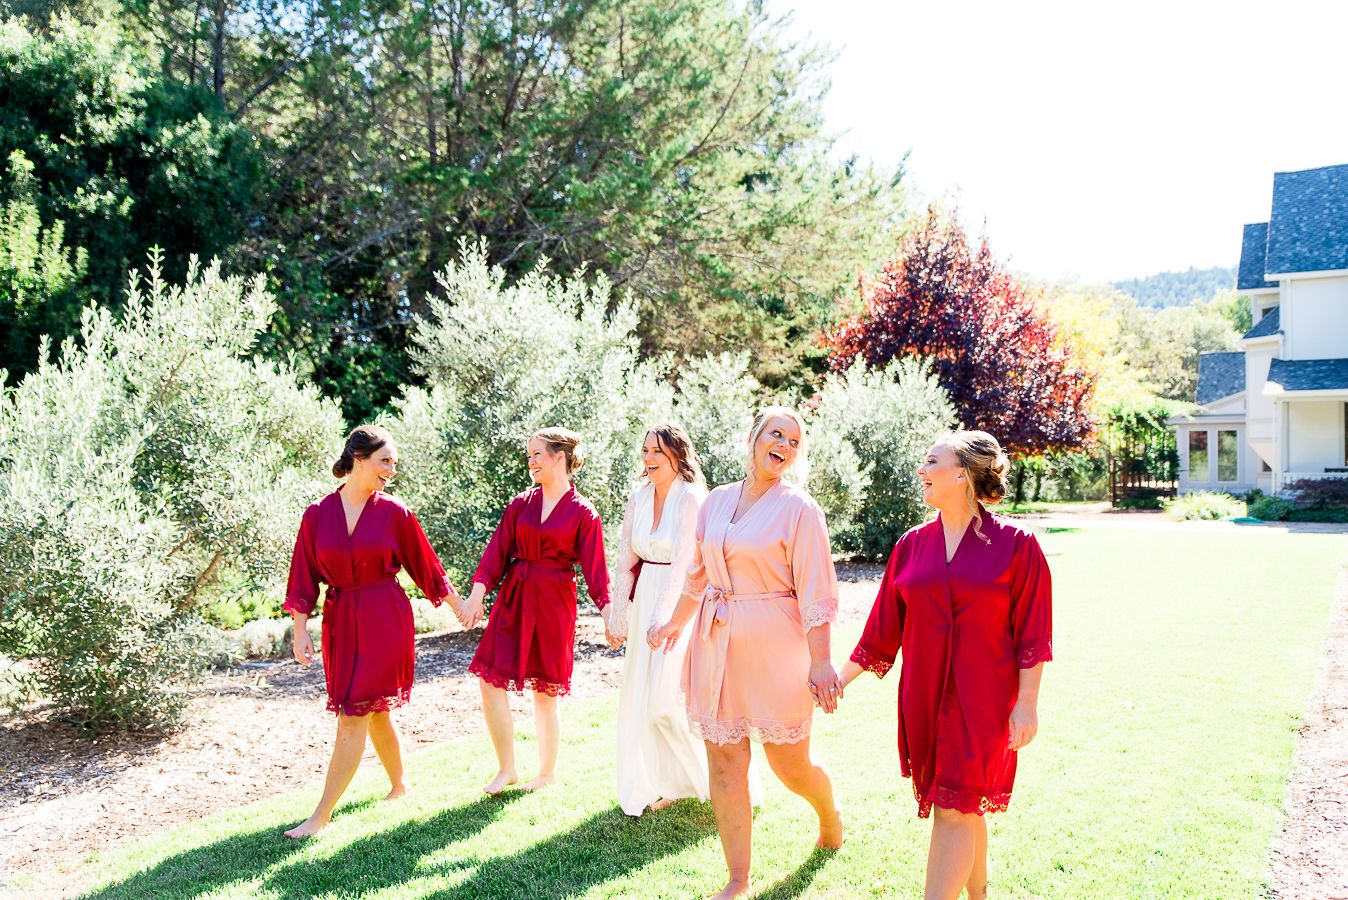 bridesmaids in red and blush robes walking in yard in California AirBNB